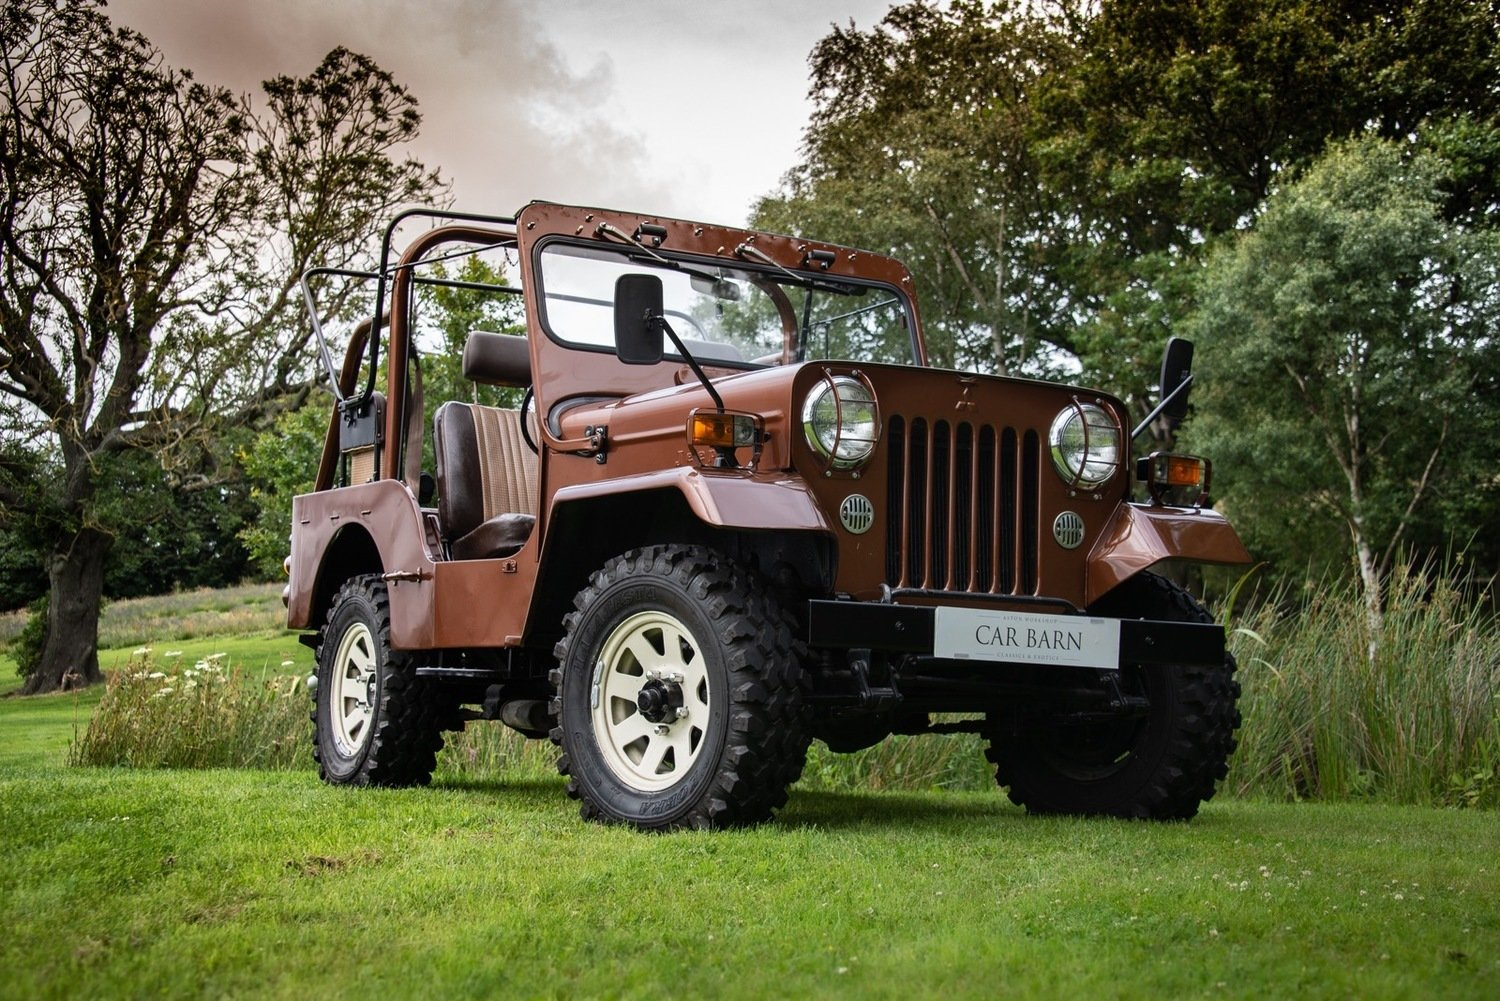 1980 Mitsibishi Jeep Wiley J58 Soft Top (SWB) For Sale (picture 2 of 6)